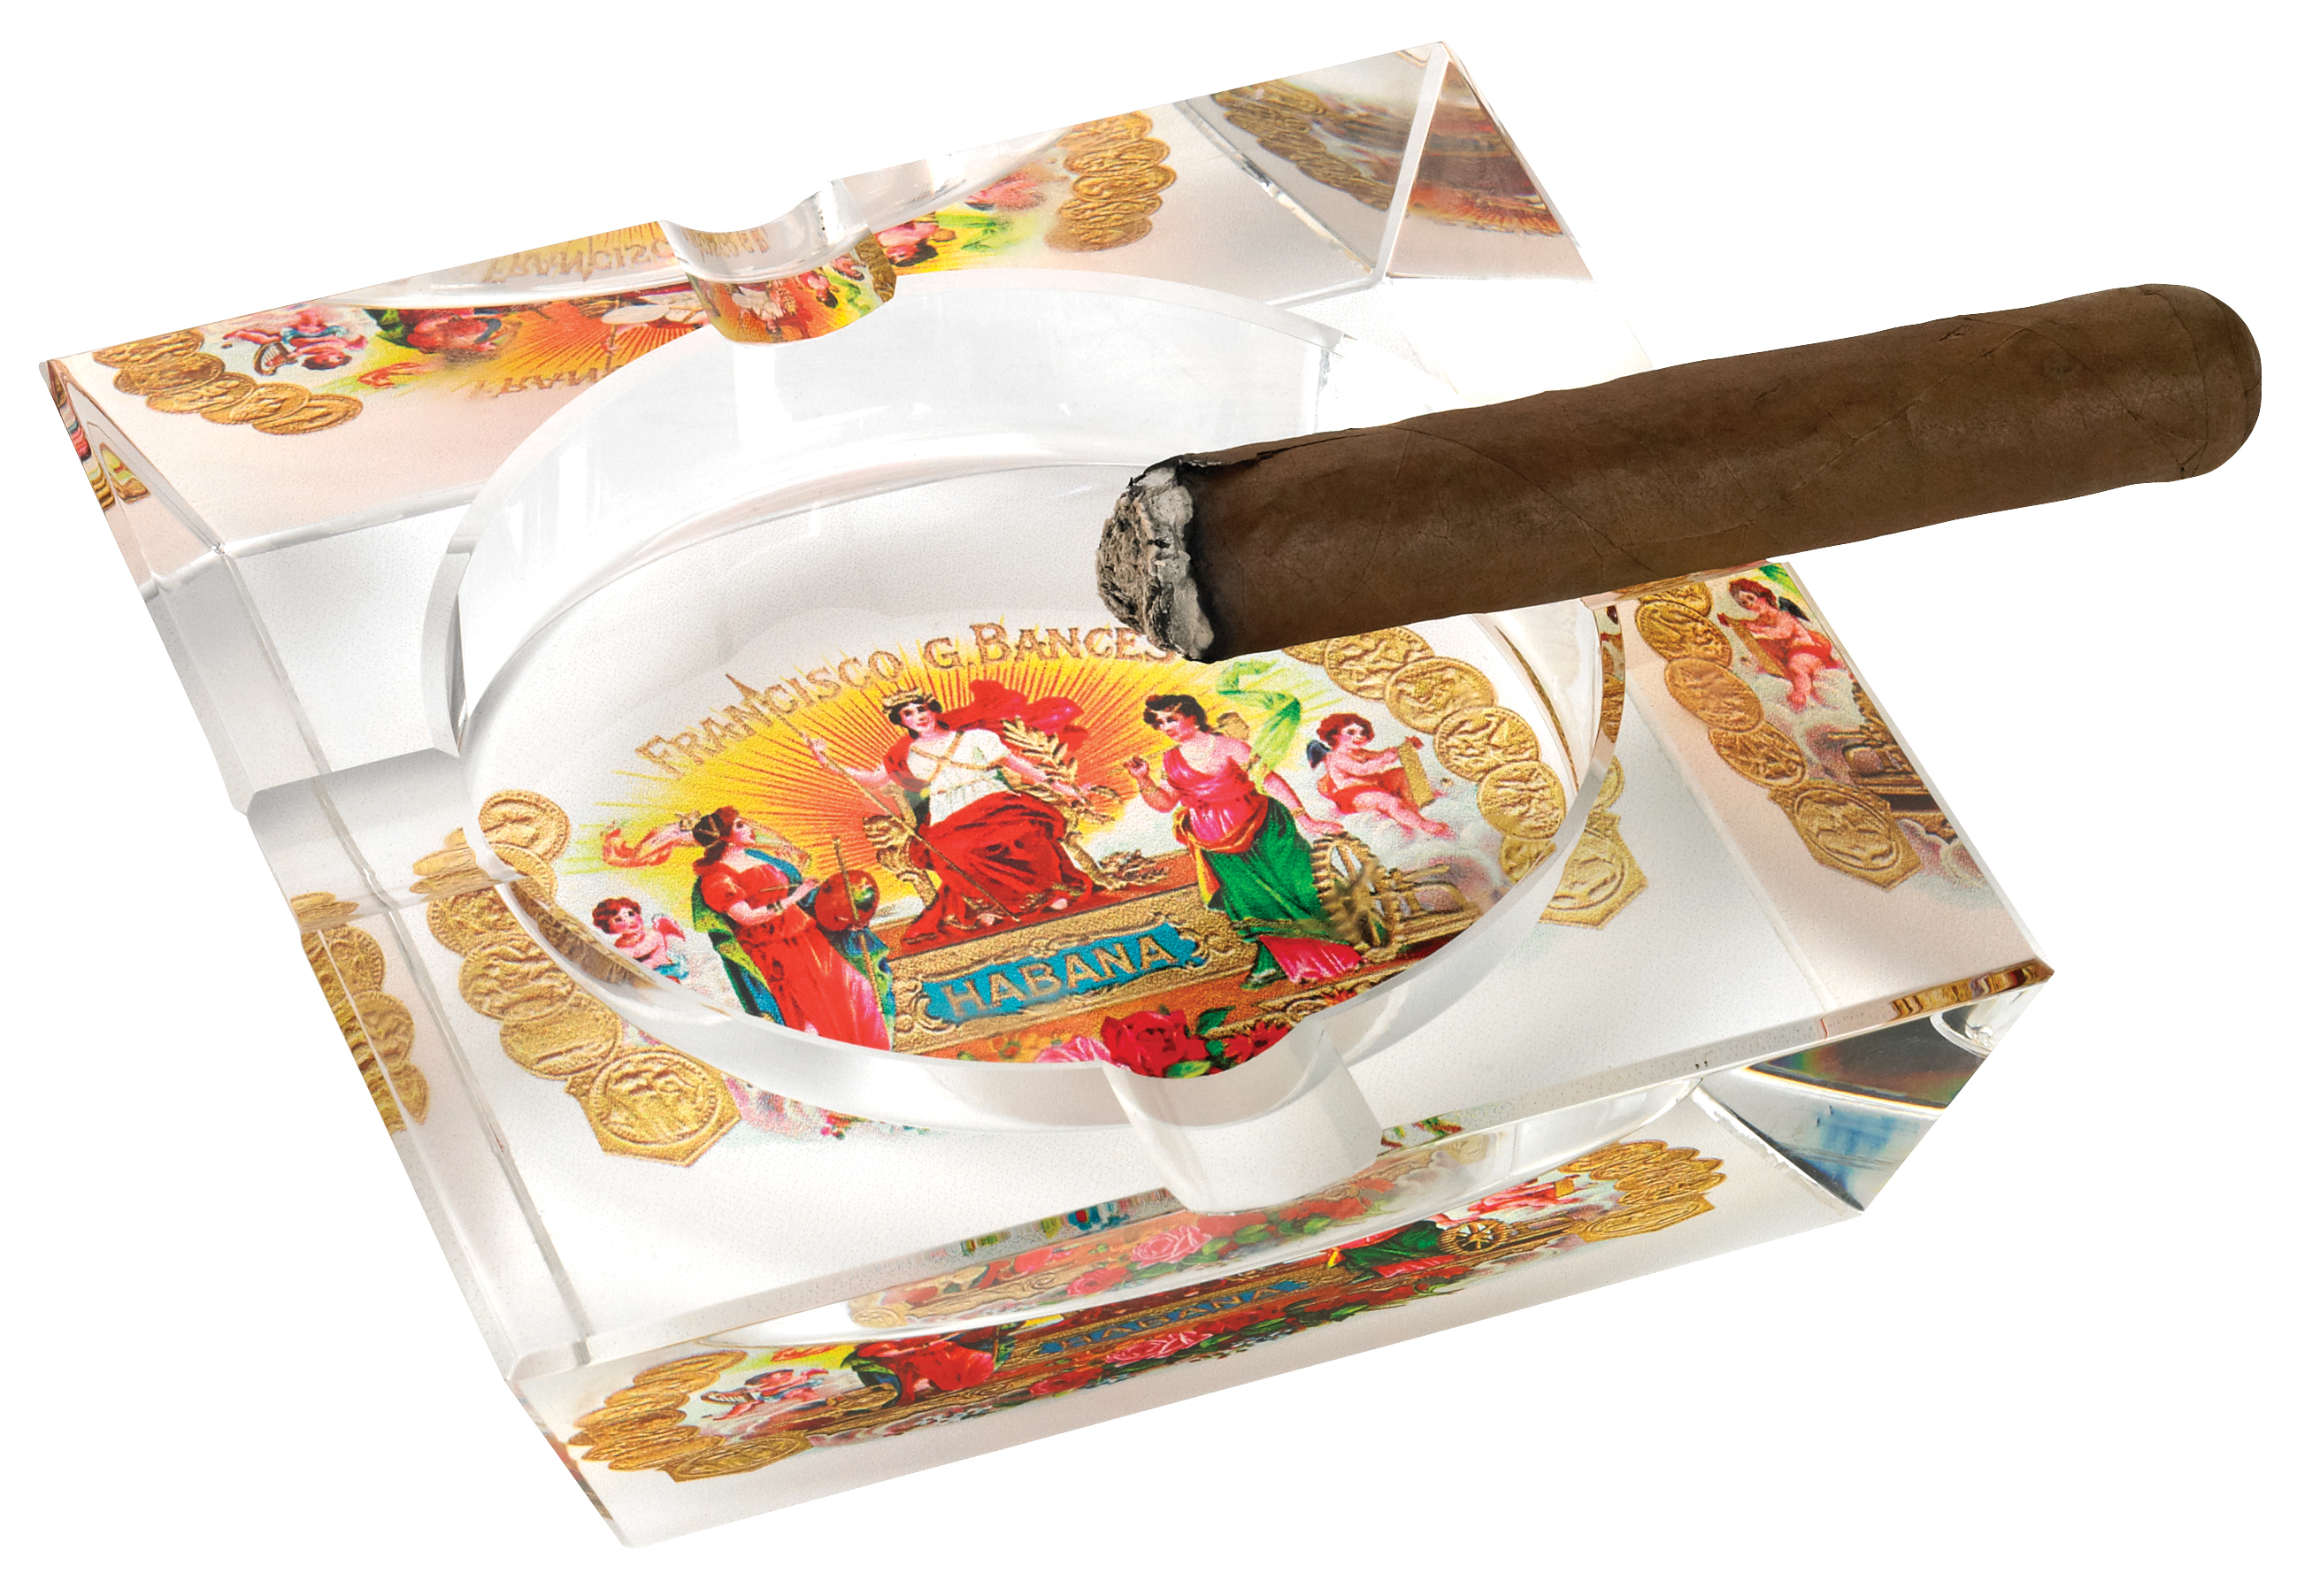 NEW!: Habana Crystal 4 Cigar Ashtray